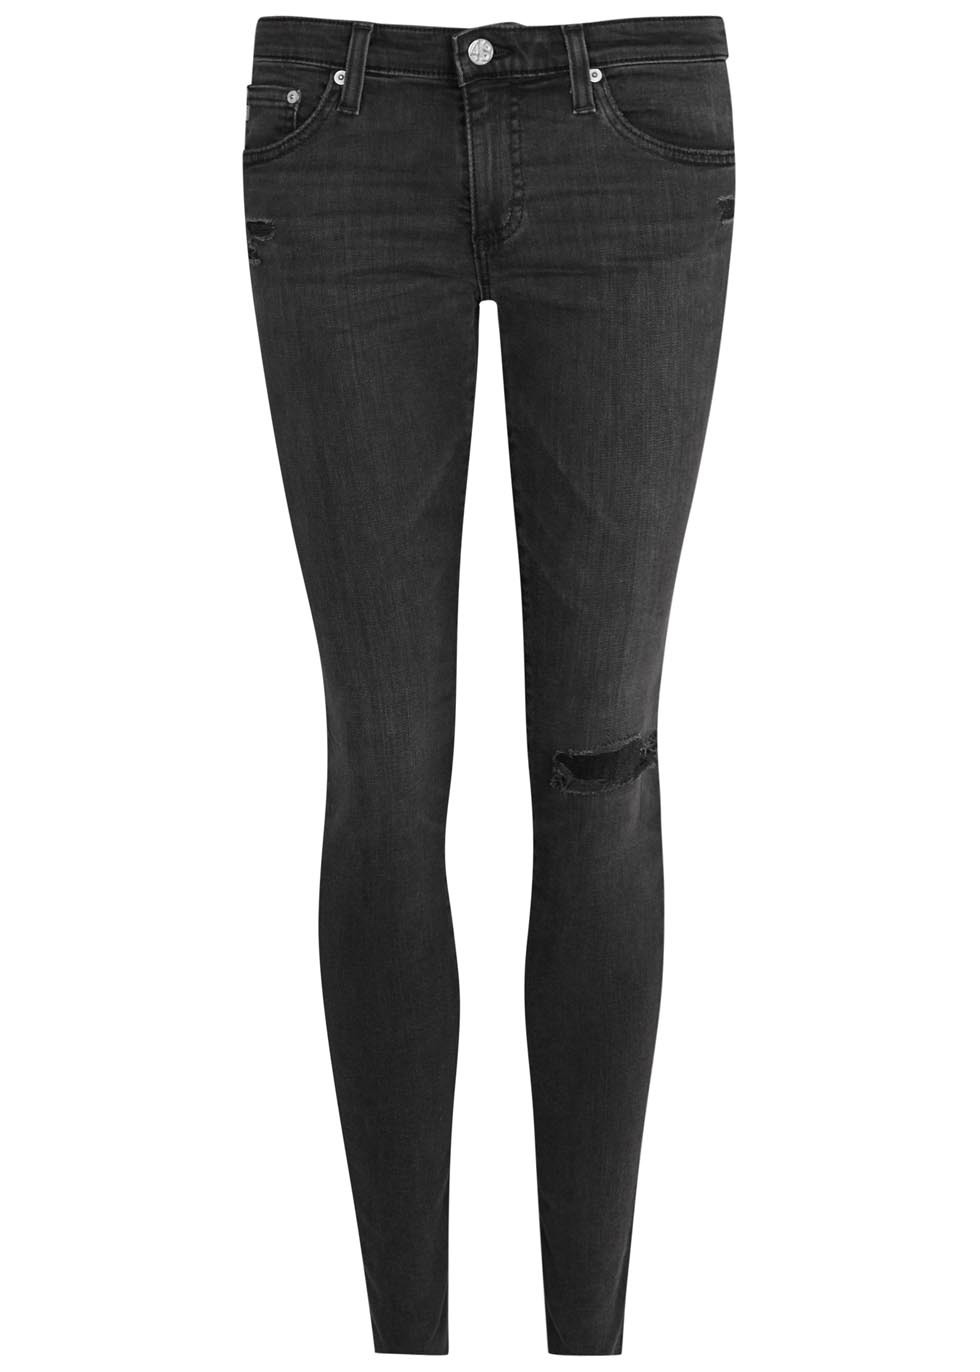 The Legging Ankle Black Skinny Jeans - style: skinny leg; length: standard; pattern: plain; pocket detail: traditional 5 pocket; waist: mid/regular rise; predominant colour: black; occasions: casual; fibres: cotton - stretch; texture group: denim; pattern type: fabric; season: s/s 2016; wardrobe: basic